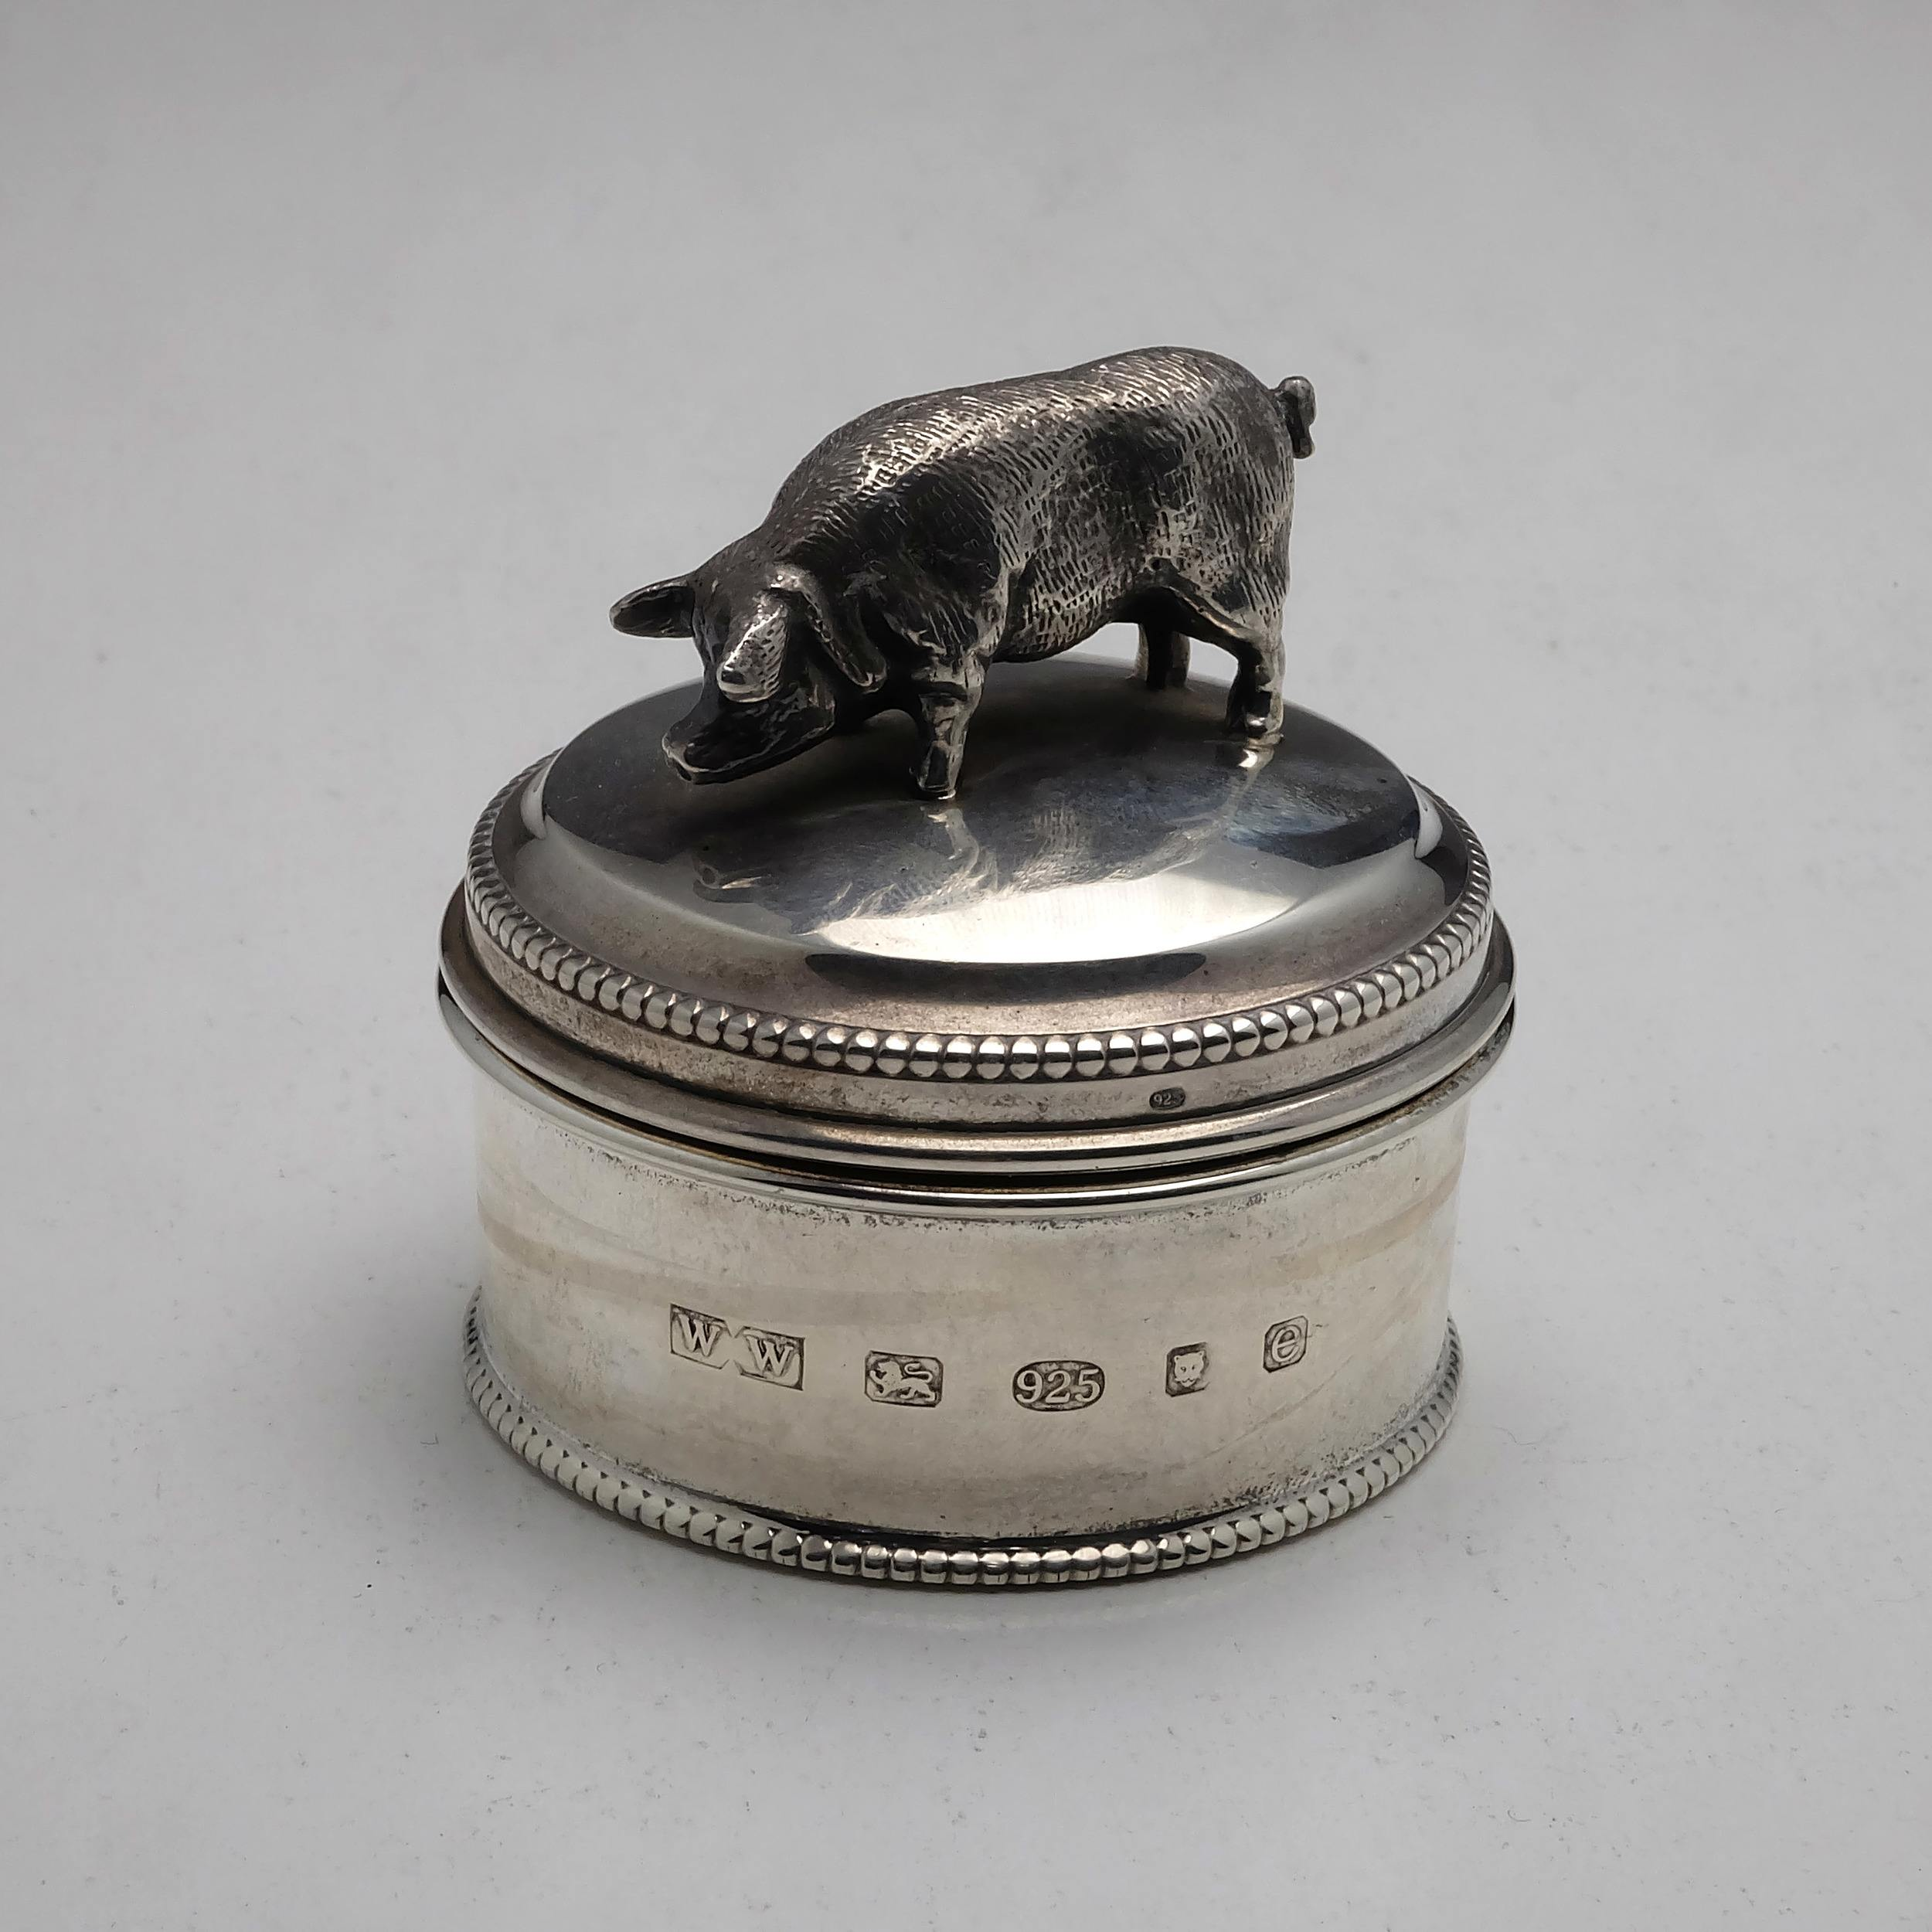 'Sterling Silver Container with Pig London Whitehill Silver & Plate Co 2004 129g'